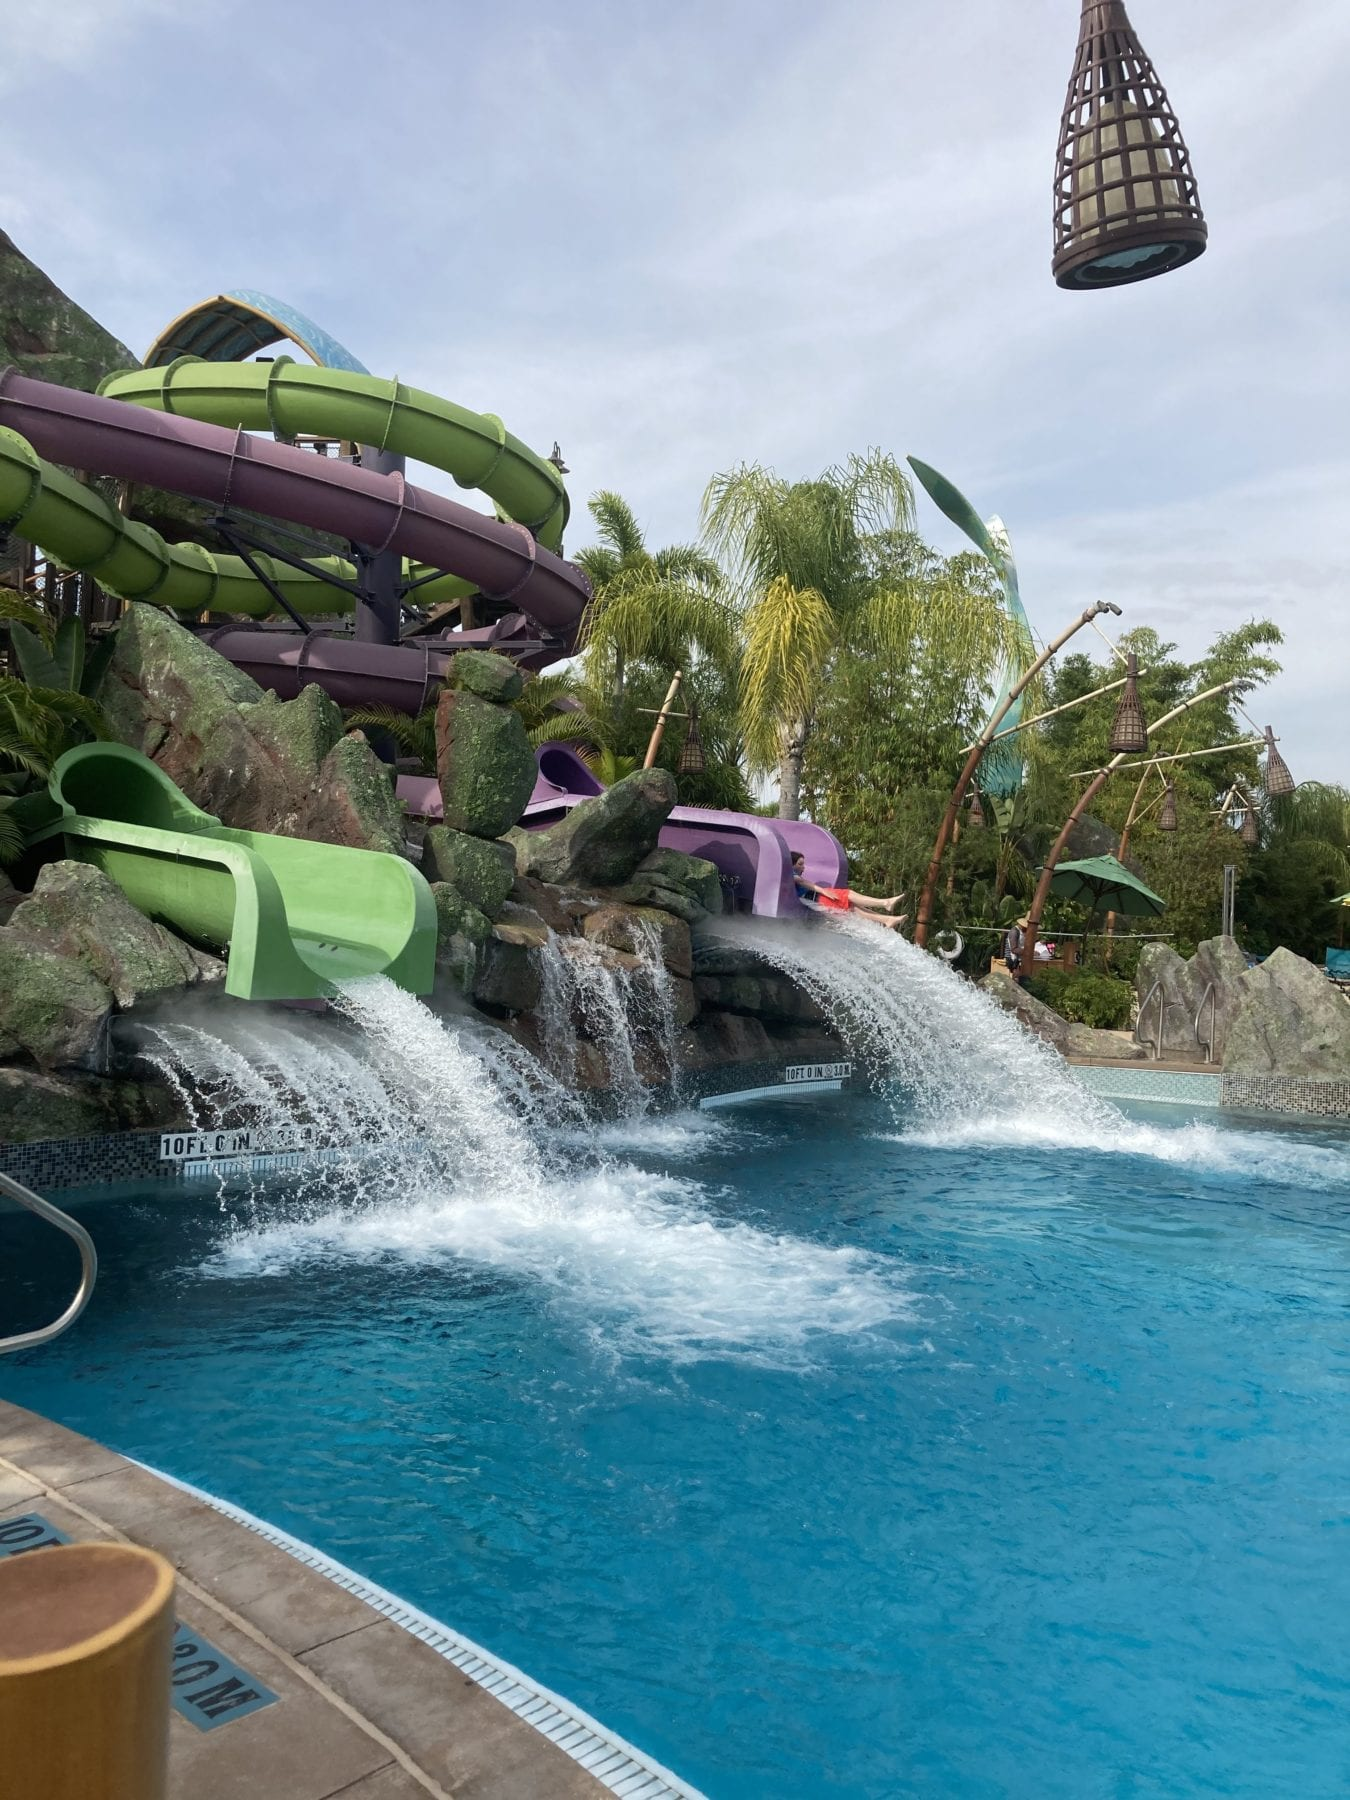 Ohyah of the Ohyah and Ohno Drop Slide at Volcano Bay